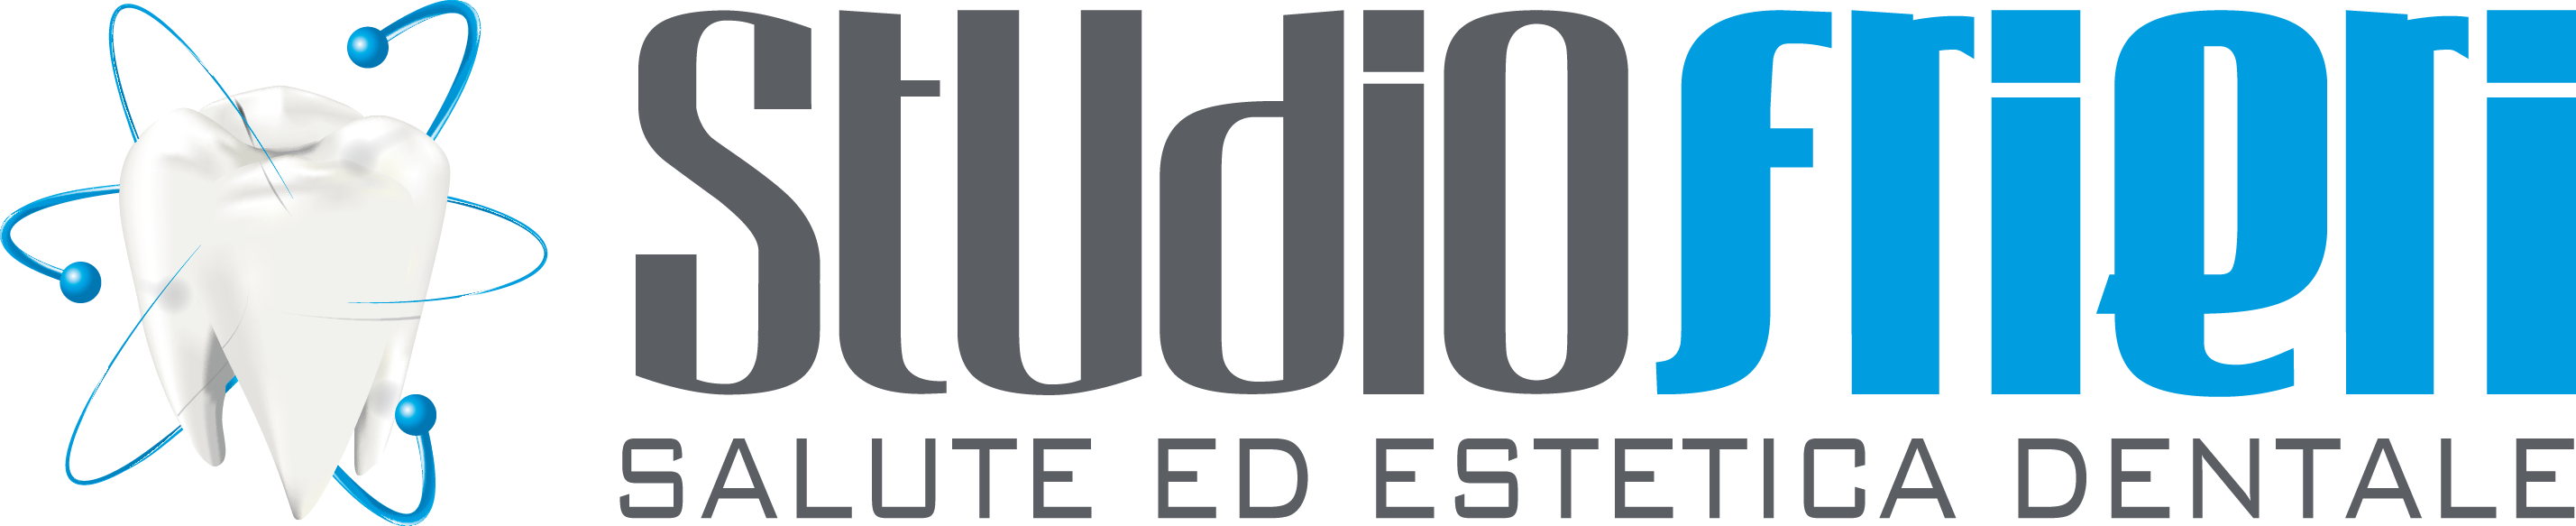 Studio Dentistico Frieri